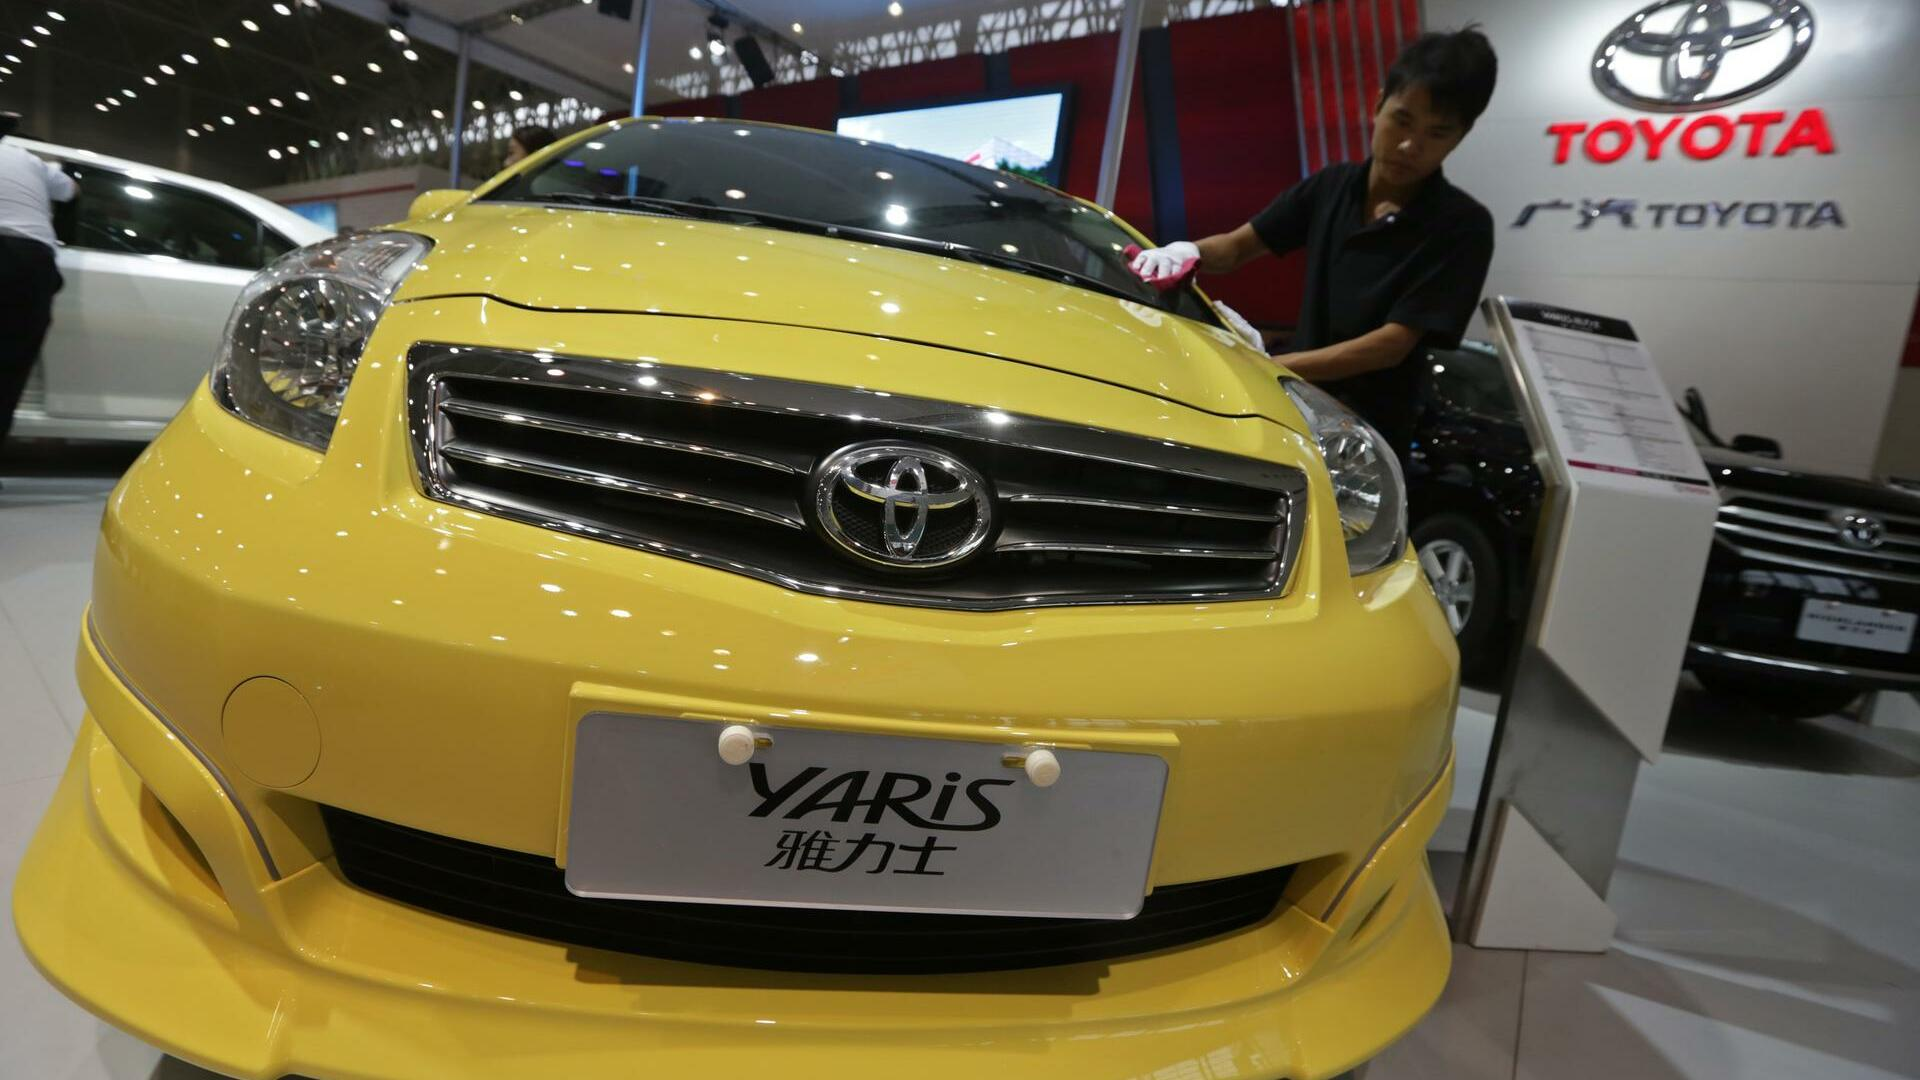 A worker cleans a Toyota Yaris car at the Wuhan Motor Show, Hubei province, Quelle: REUTERS